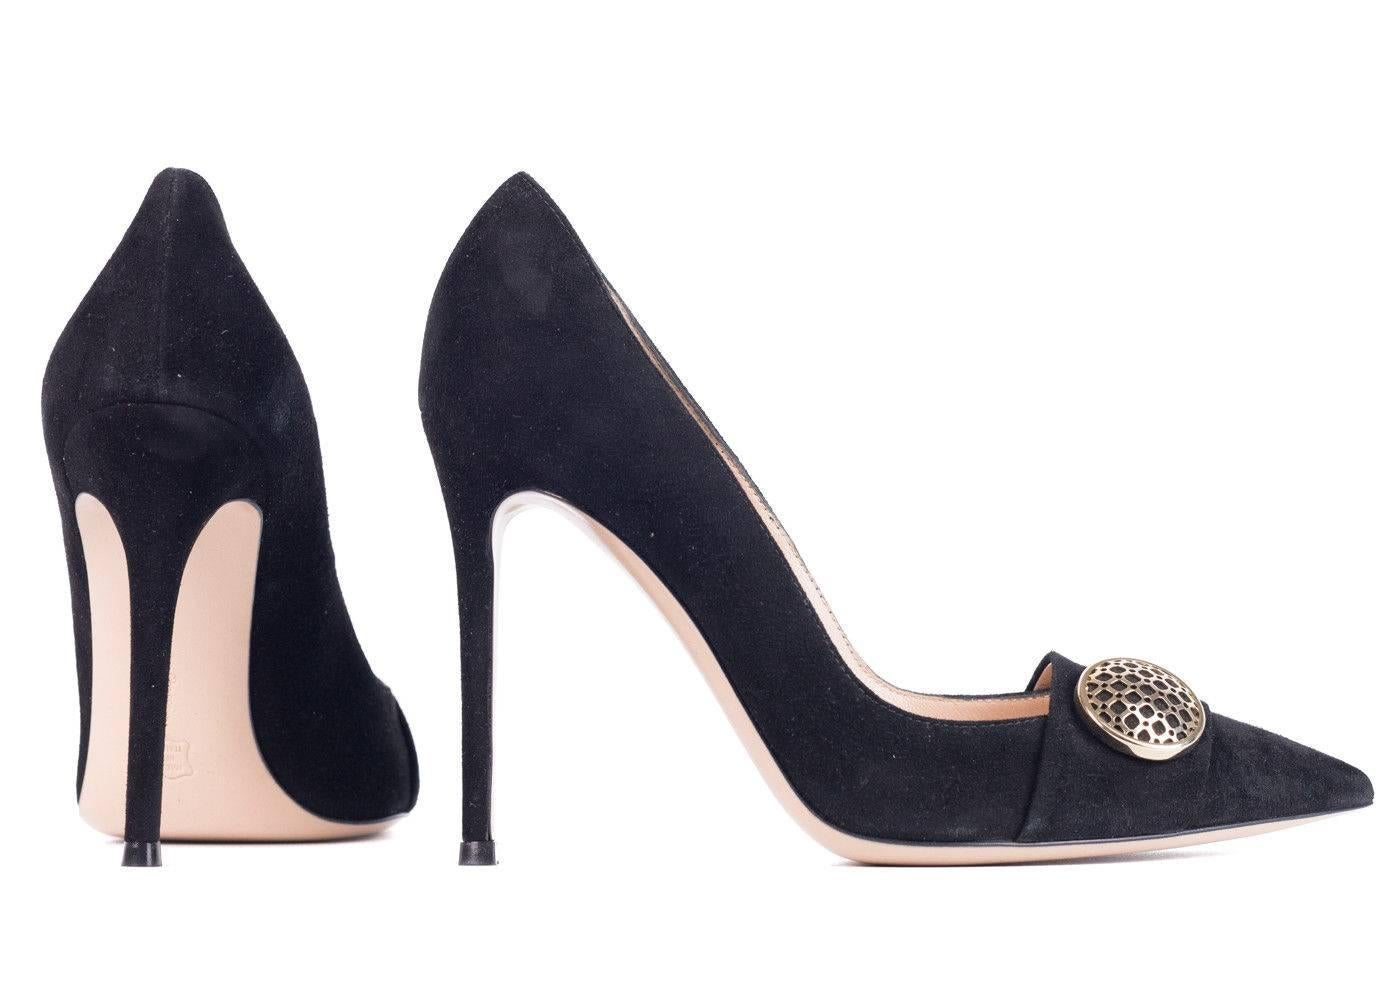 quality free shipping outlet sale looking for Gianvito Rossi Suede Point-Toe Pumps outlet wide range of for sale cheap real Cheapest sale online rZBr4eIaHC